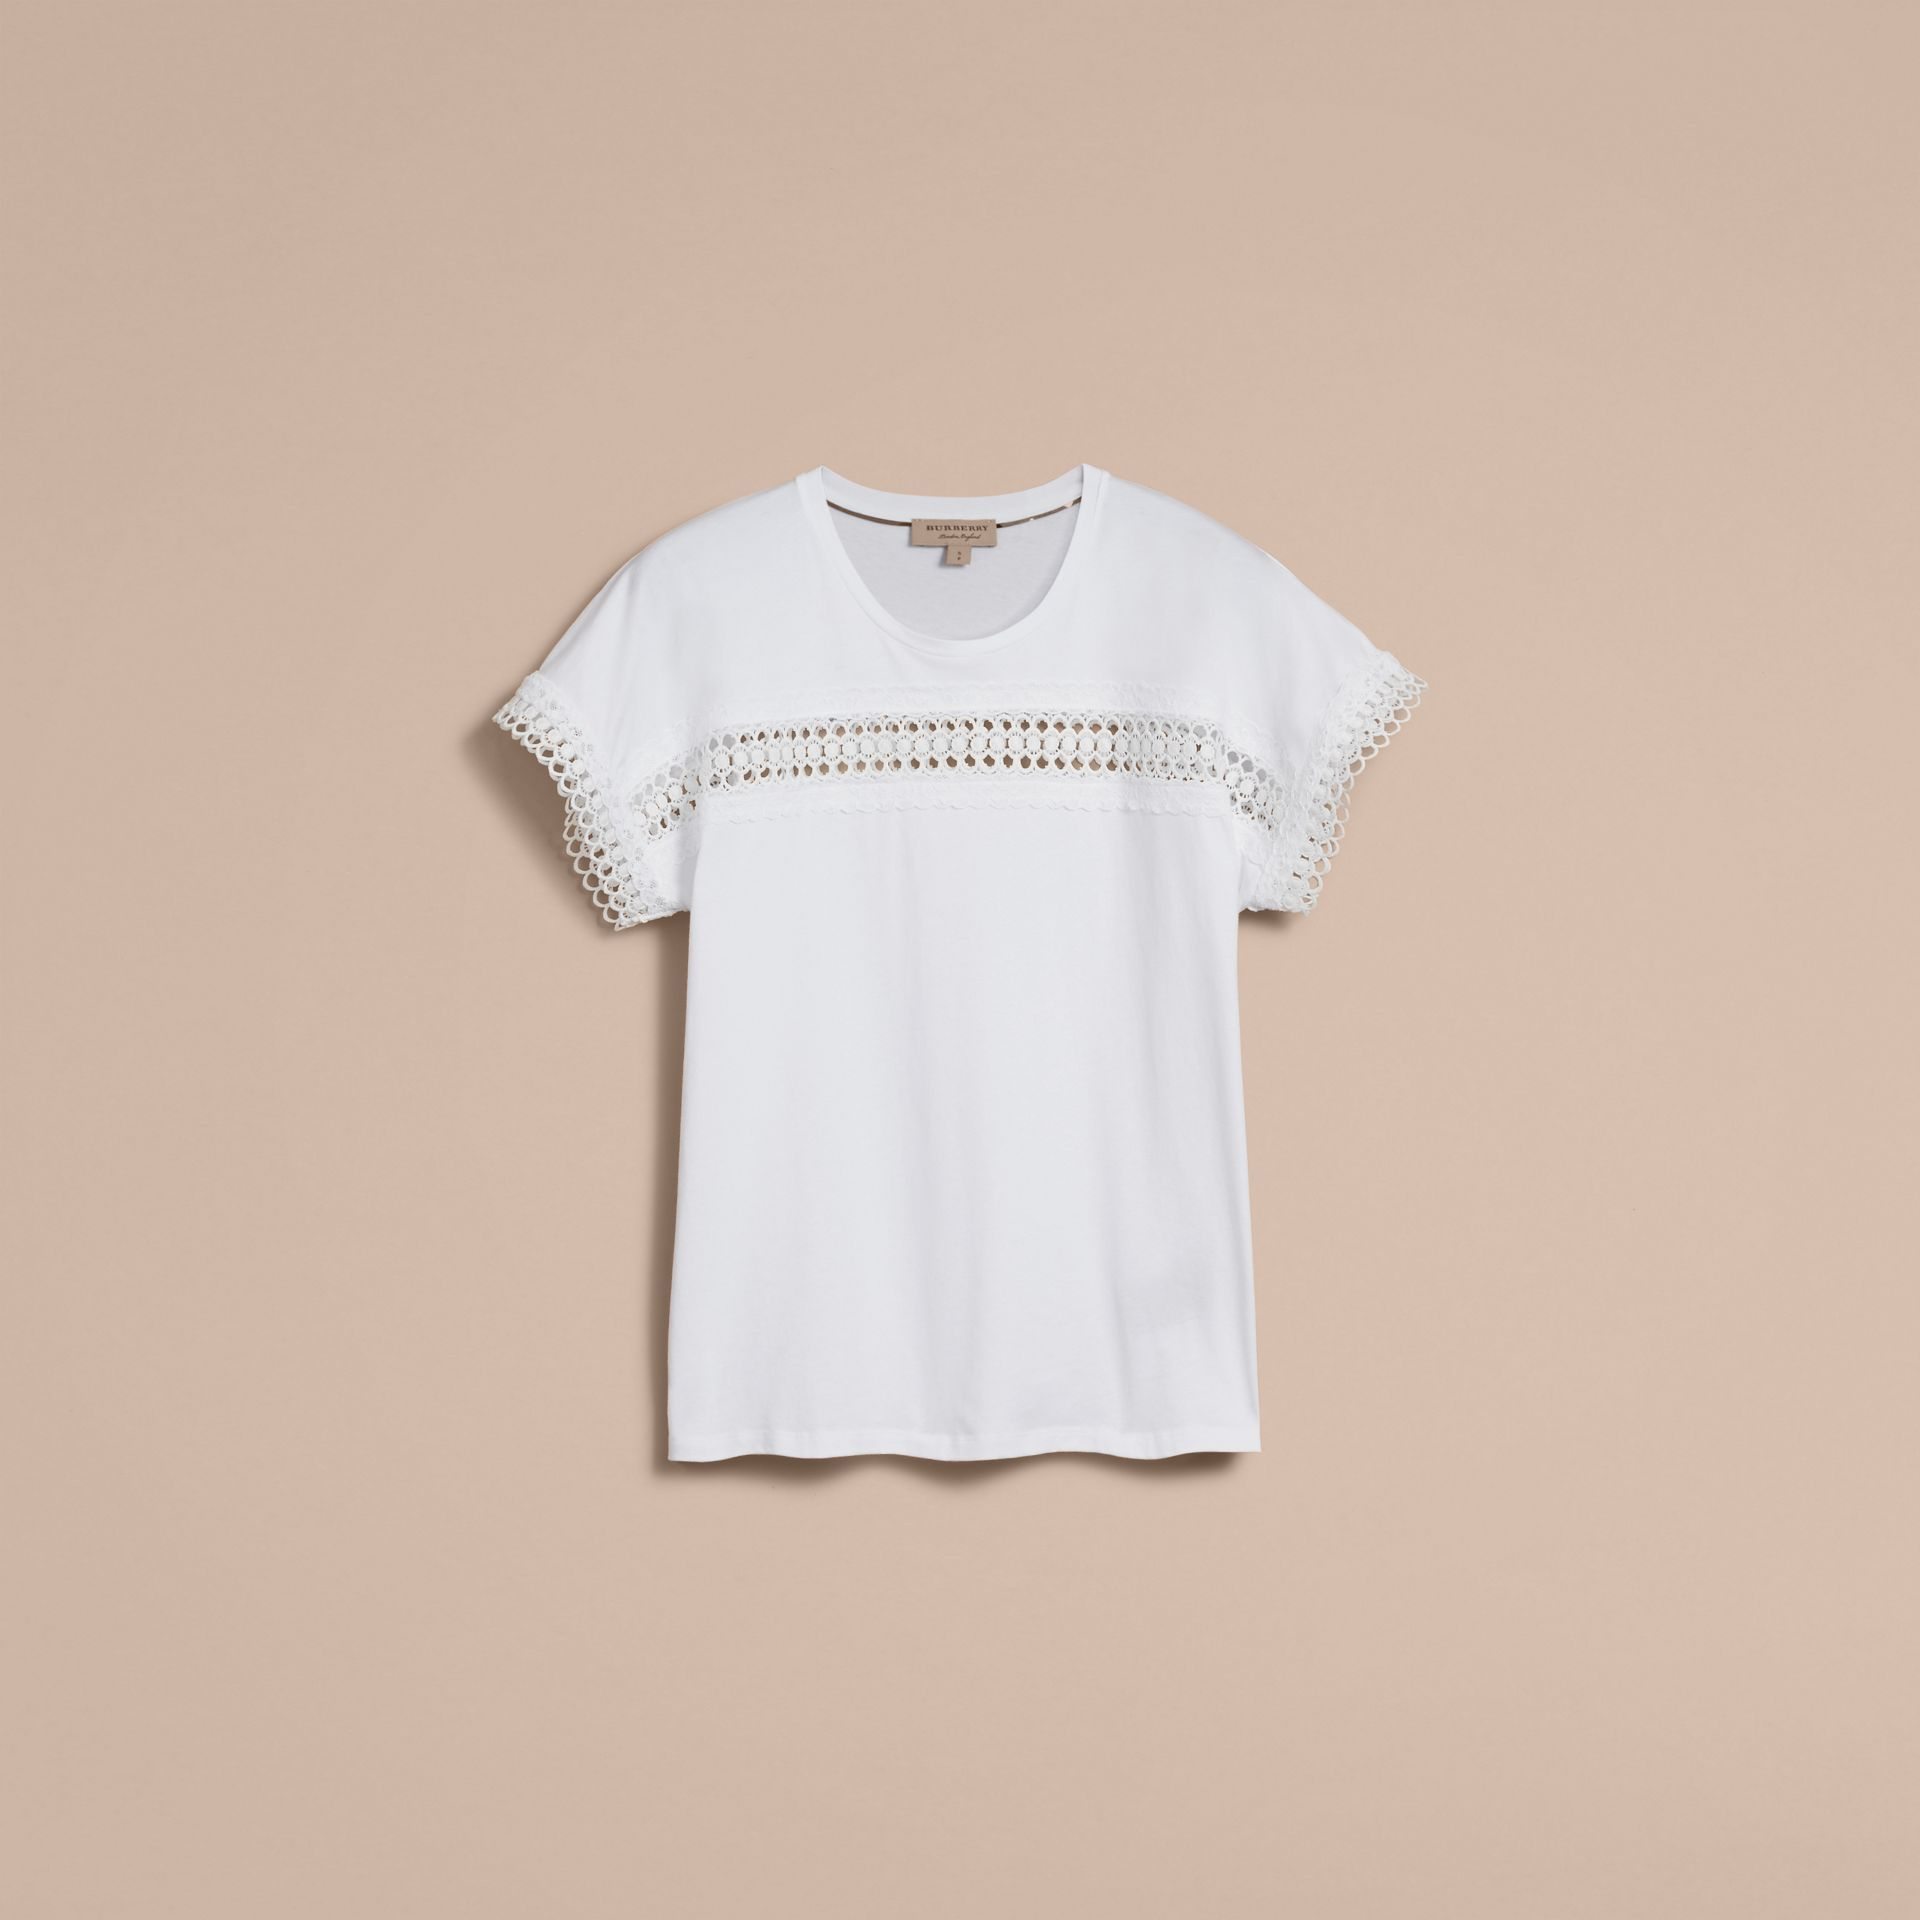 Lace Detail Cotton T-shirt White - gallery image 4